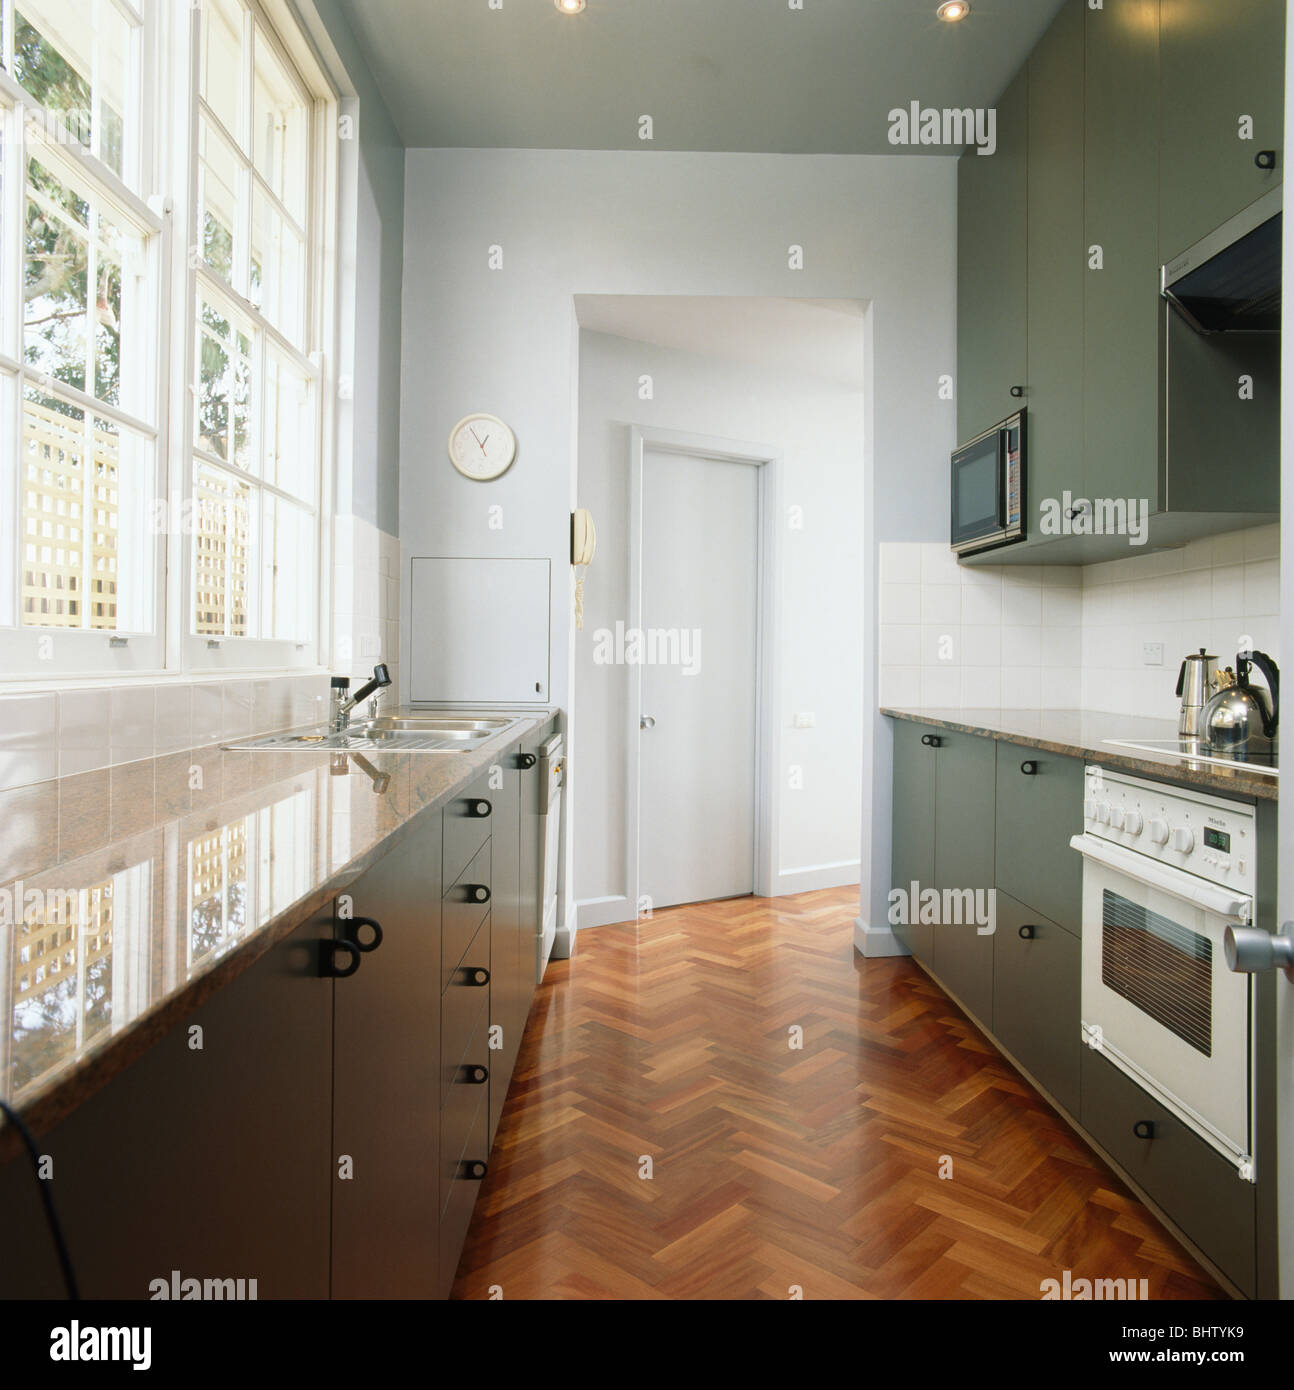 White galley kitchens - Parquet Flooring In Modern White Galley Kitchen With Gray Fitted Units And Granite Worktops